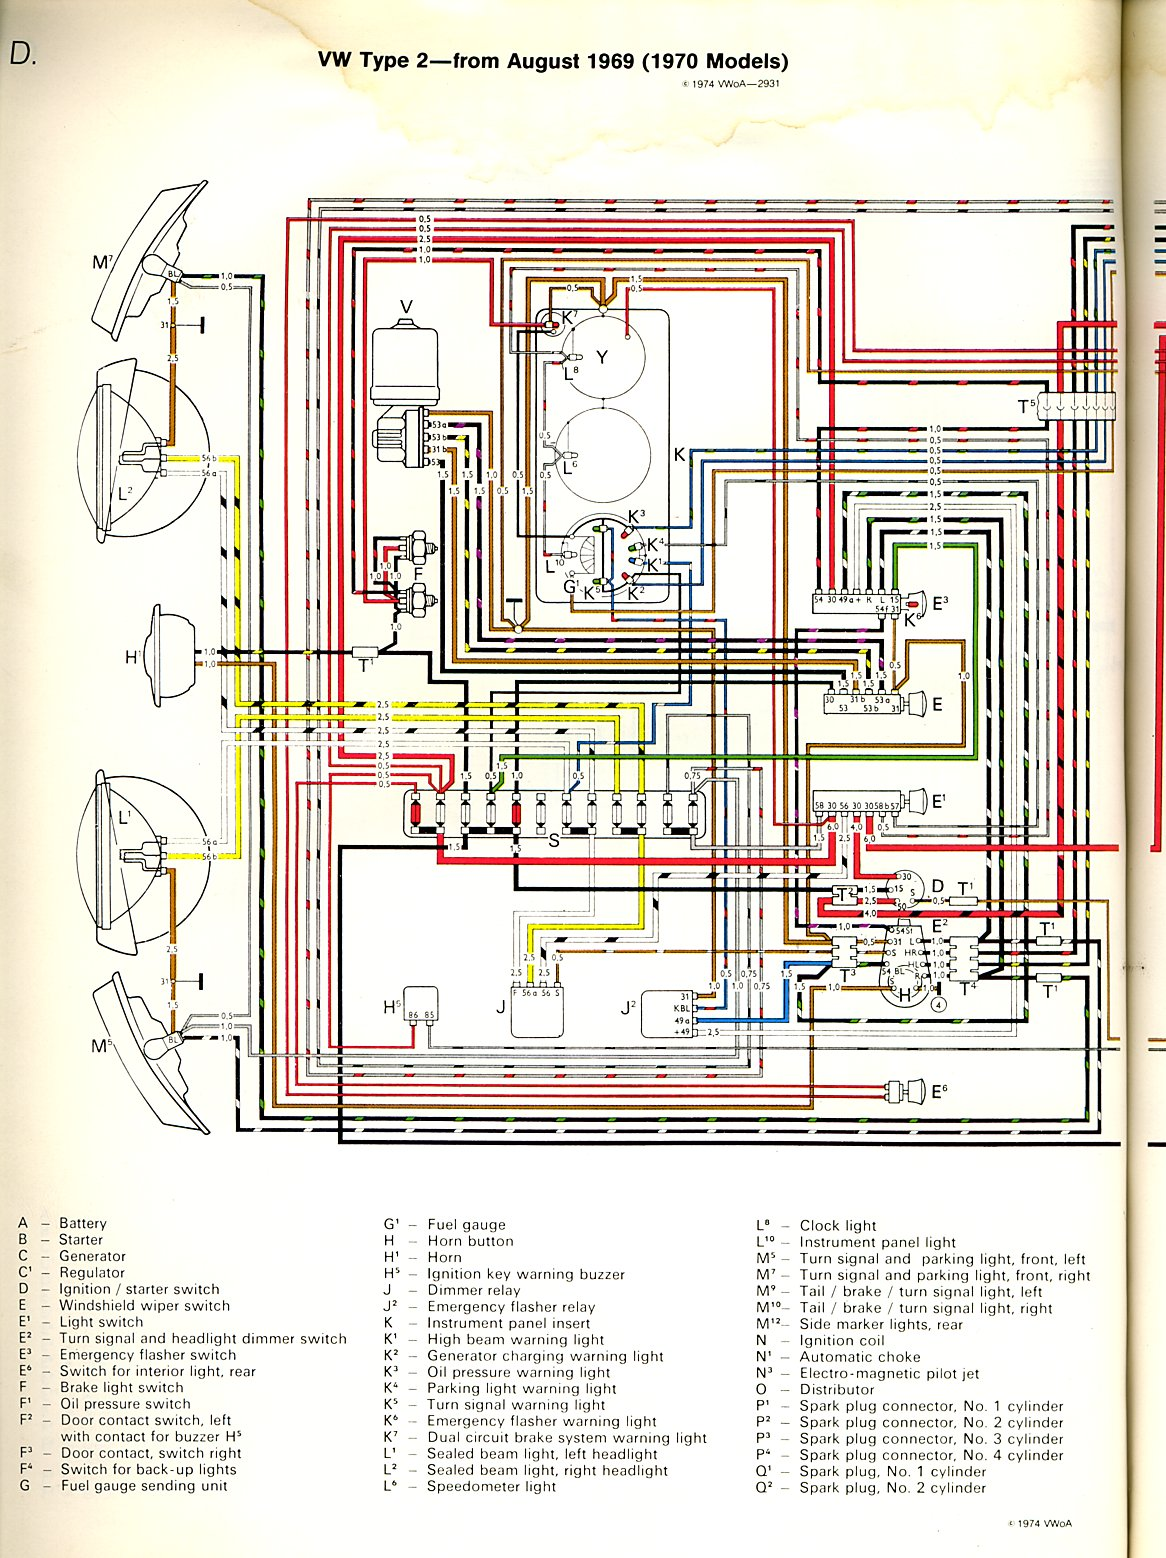 baybus_70a thesamba com type 2 wiring diagrams 77 Corvette Wiring Diagram at bakdesigns.co